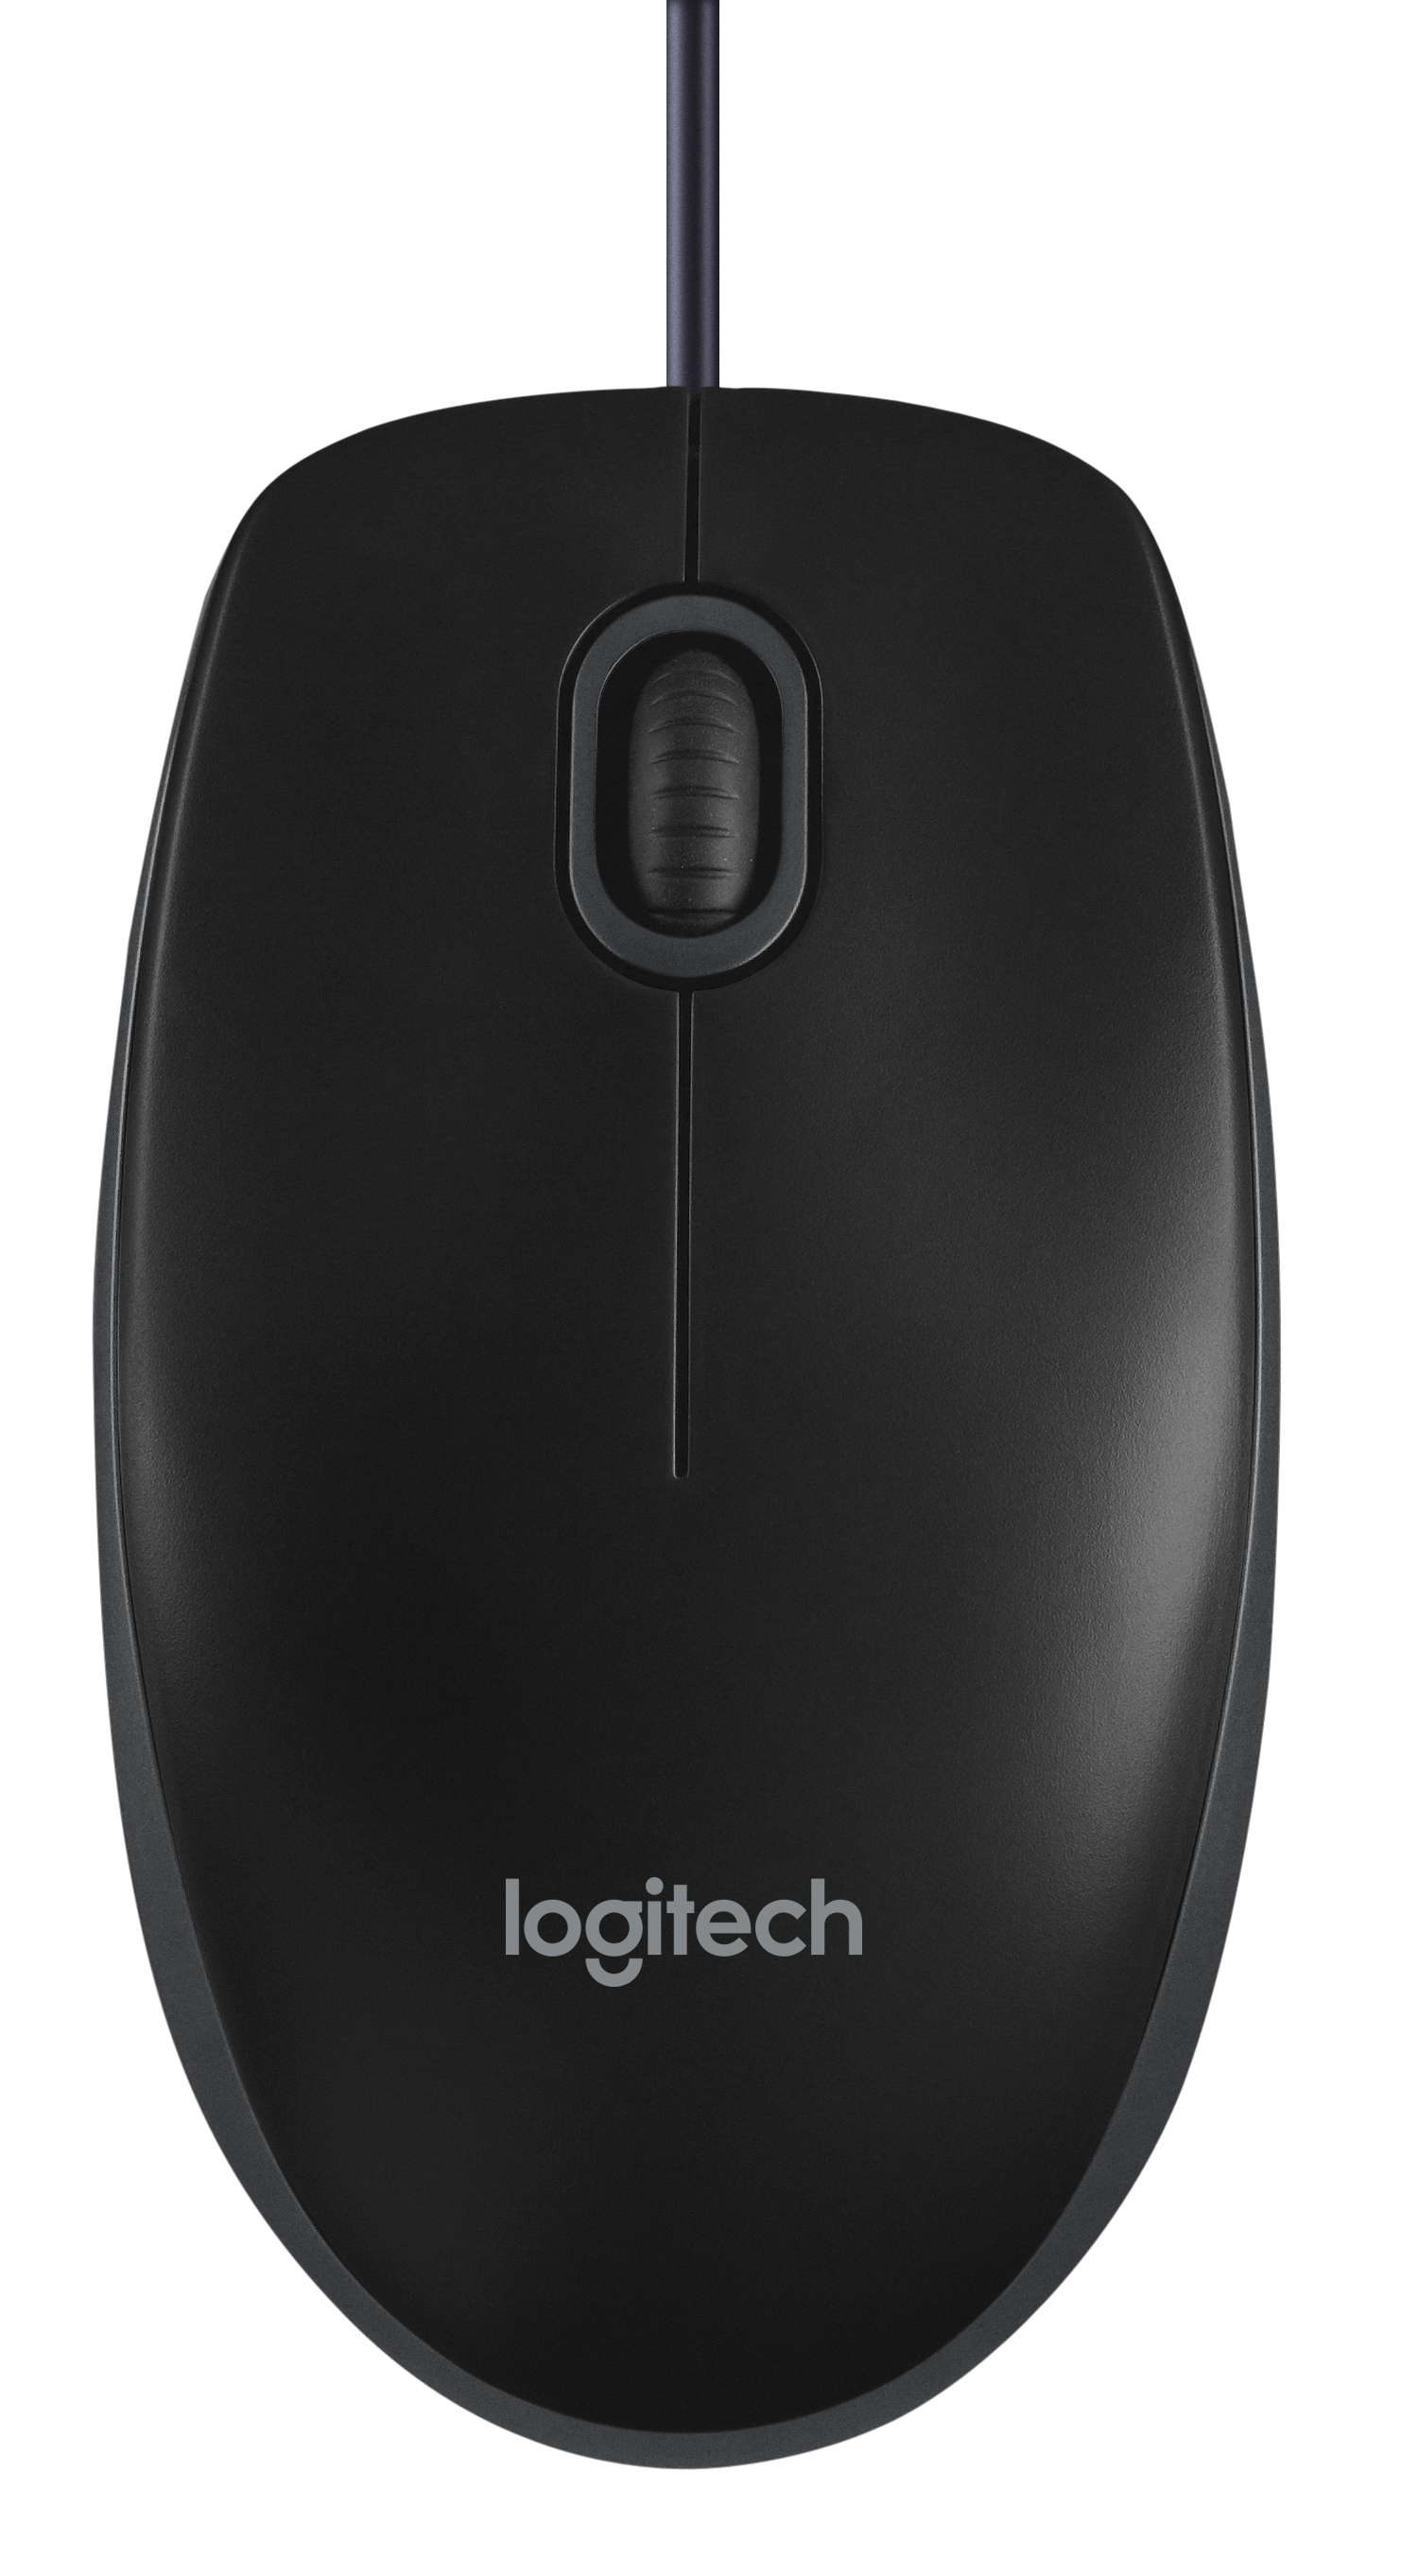 Logitech B100 optical USB black OEM